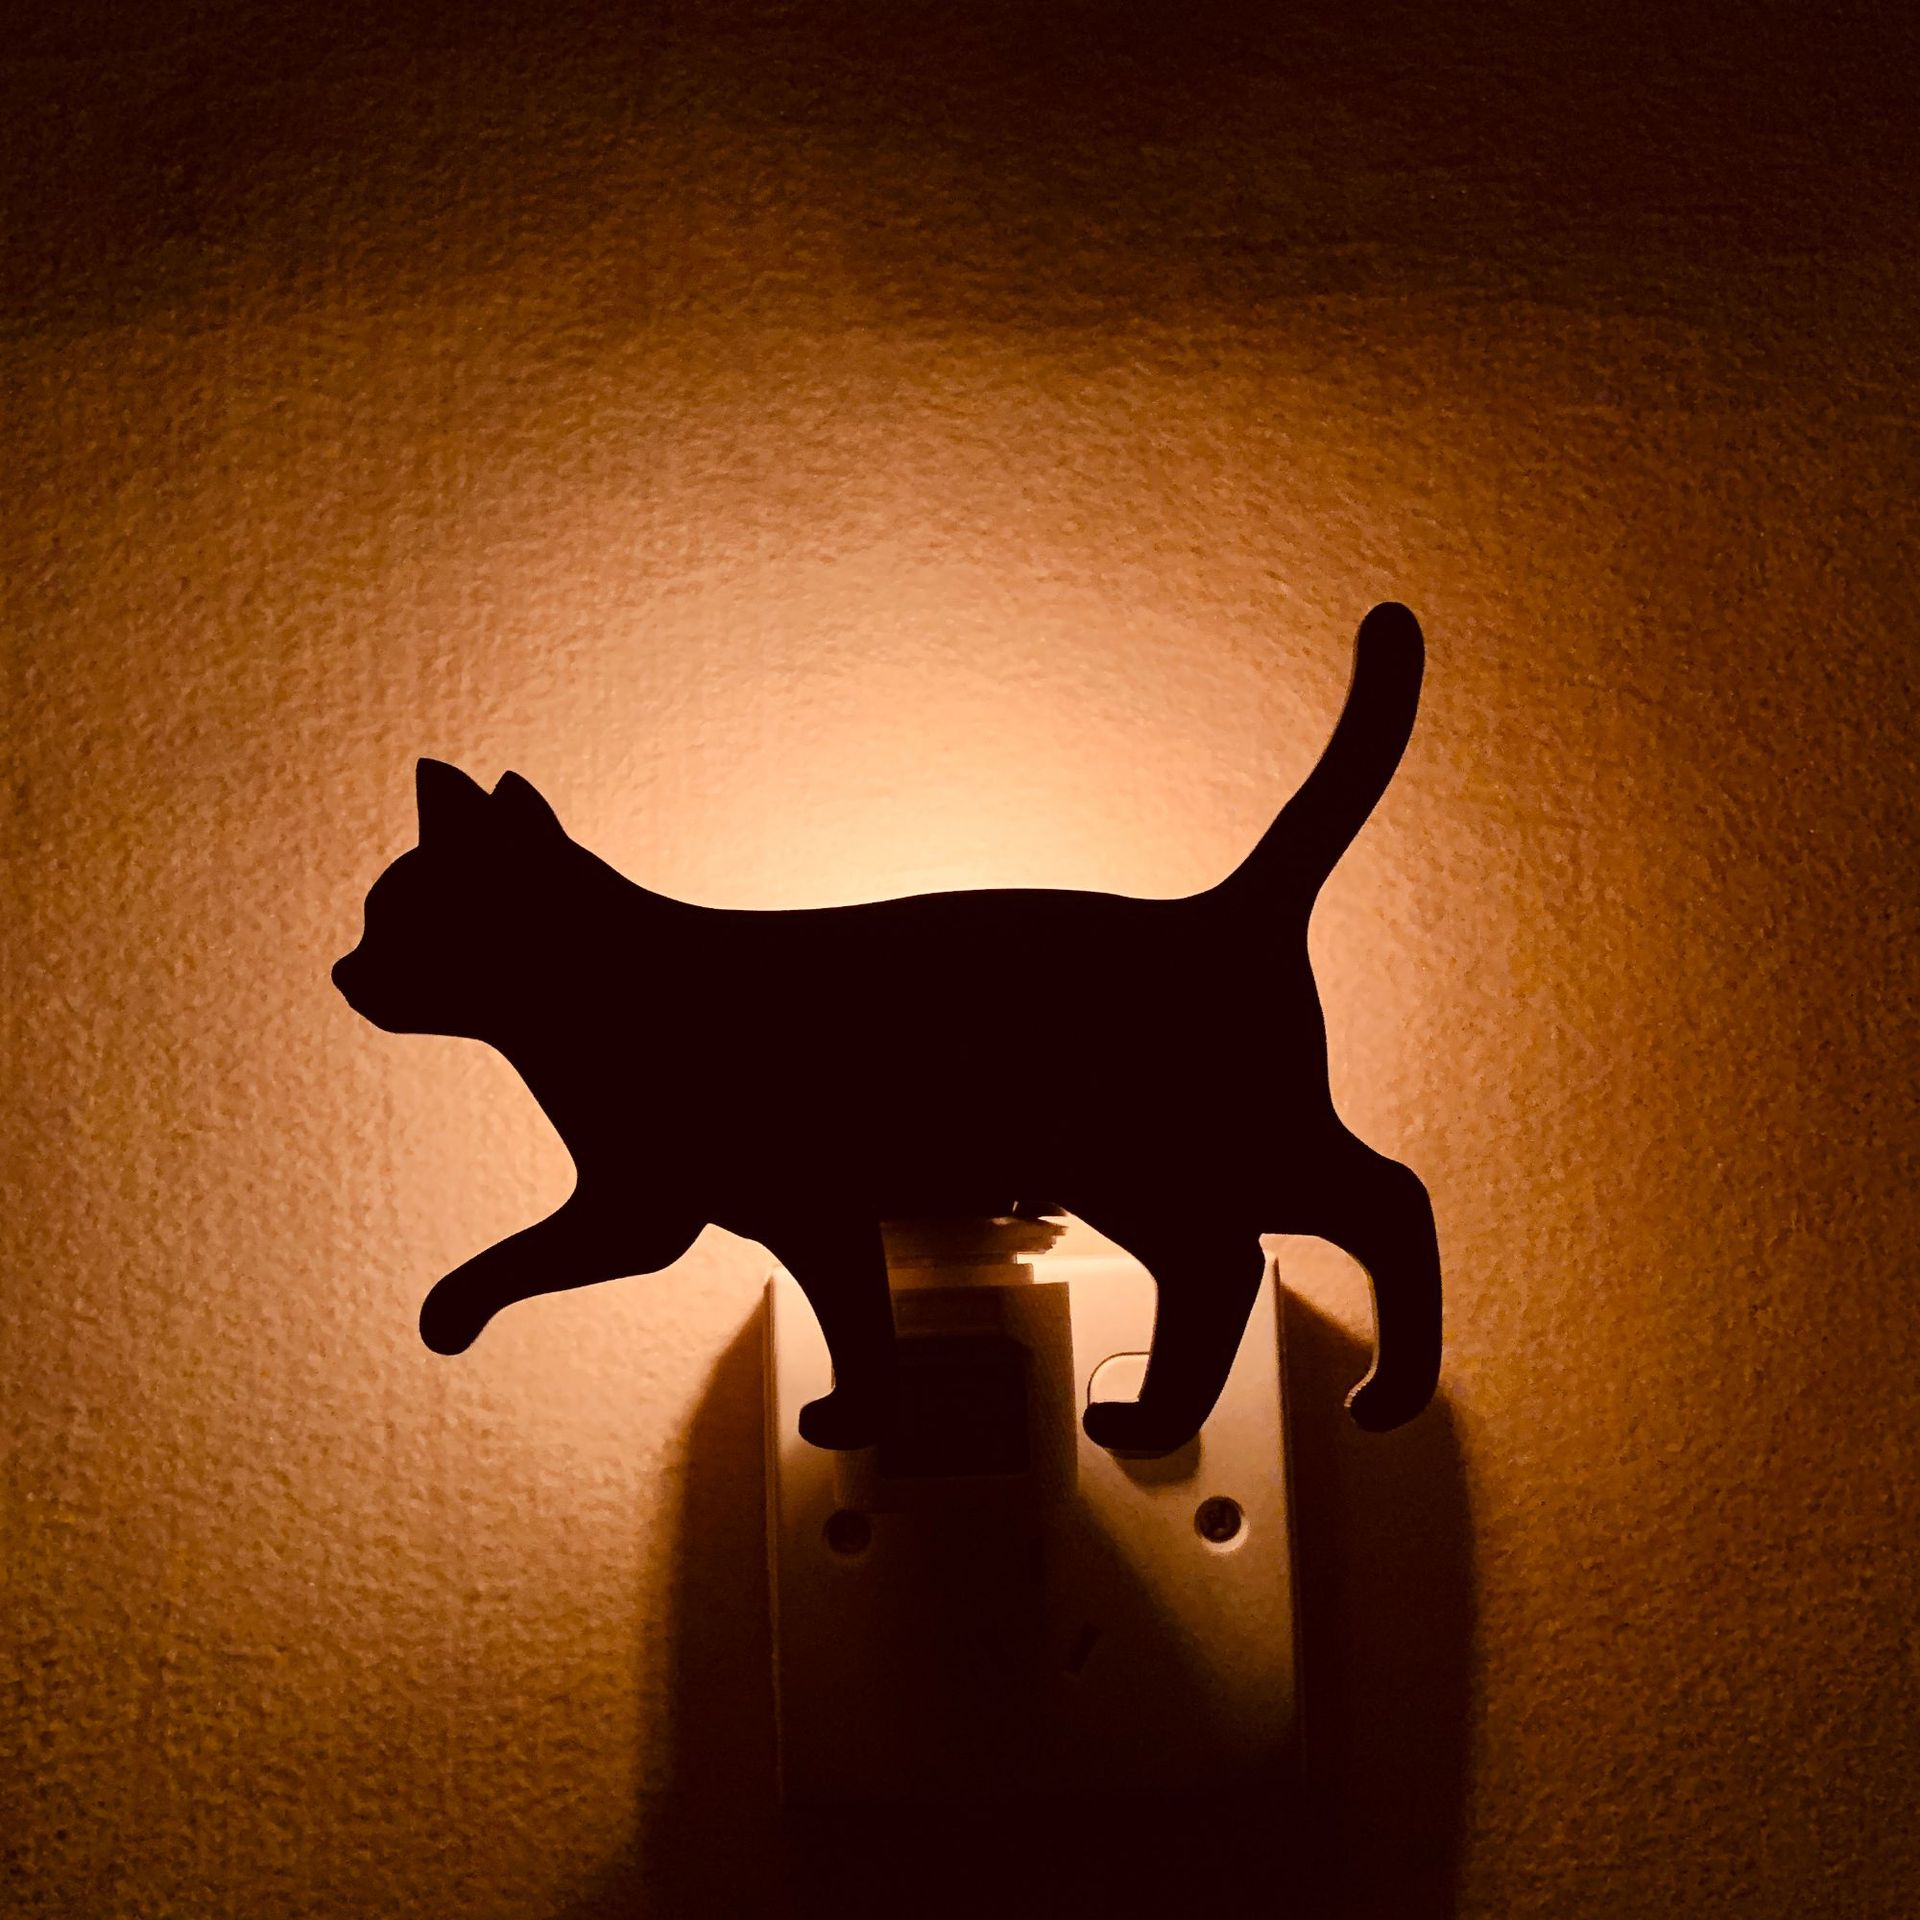 Light-controlled Night Light LED 5W 220V Cute Cartoon Animals Cats Shaped Bedroom Living Room High Quality Projection Lamp